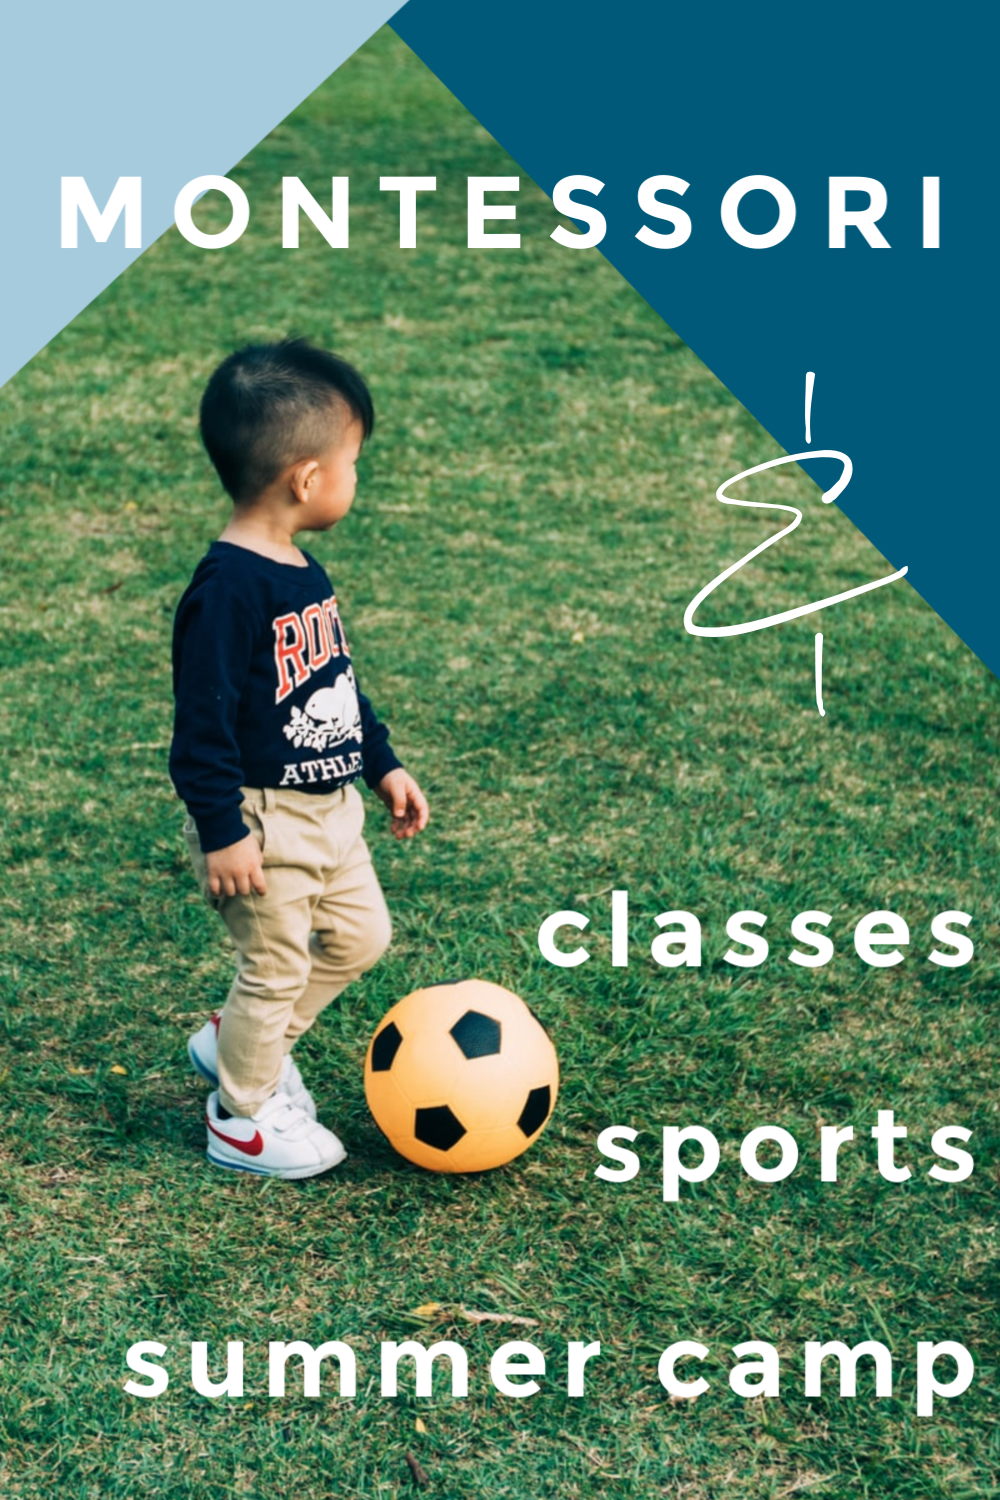 As a Montessori parent it can be difficult to decide which activities and classes are appropriate. In this Montessori podcast, we give parenting advice and tips for deciding which classes and activities are appropriate for Montessori families.